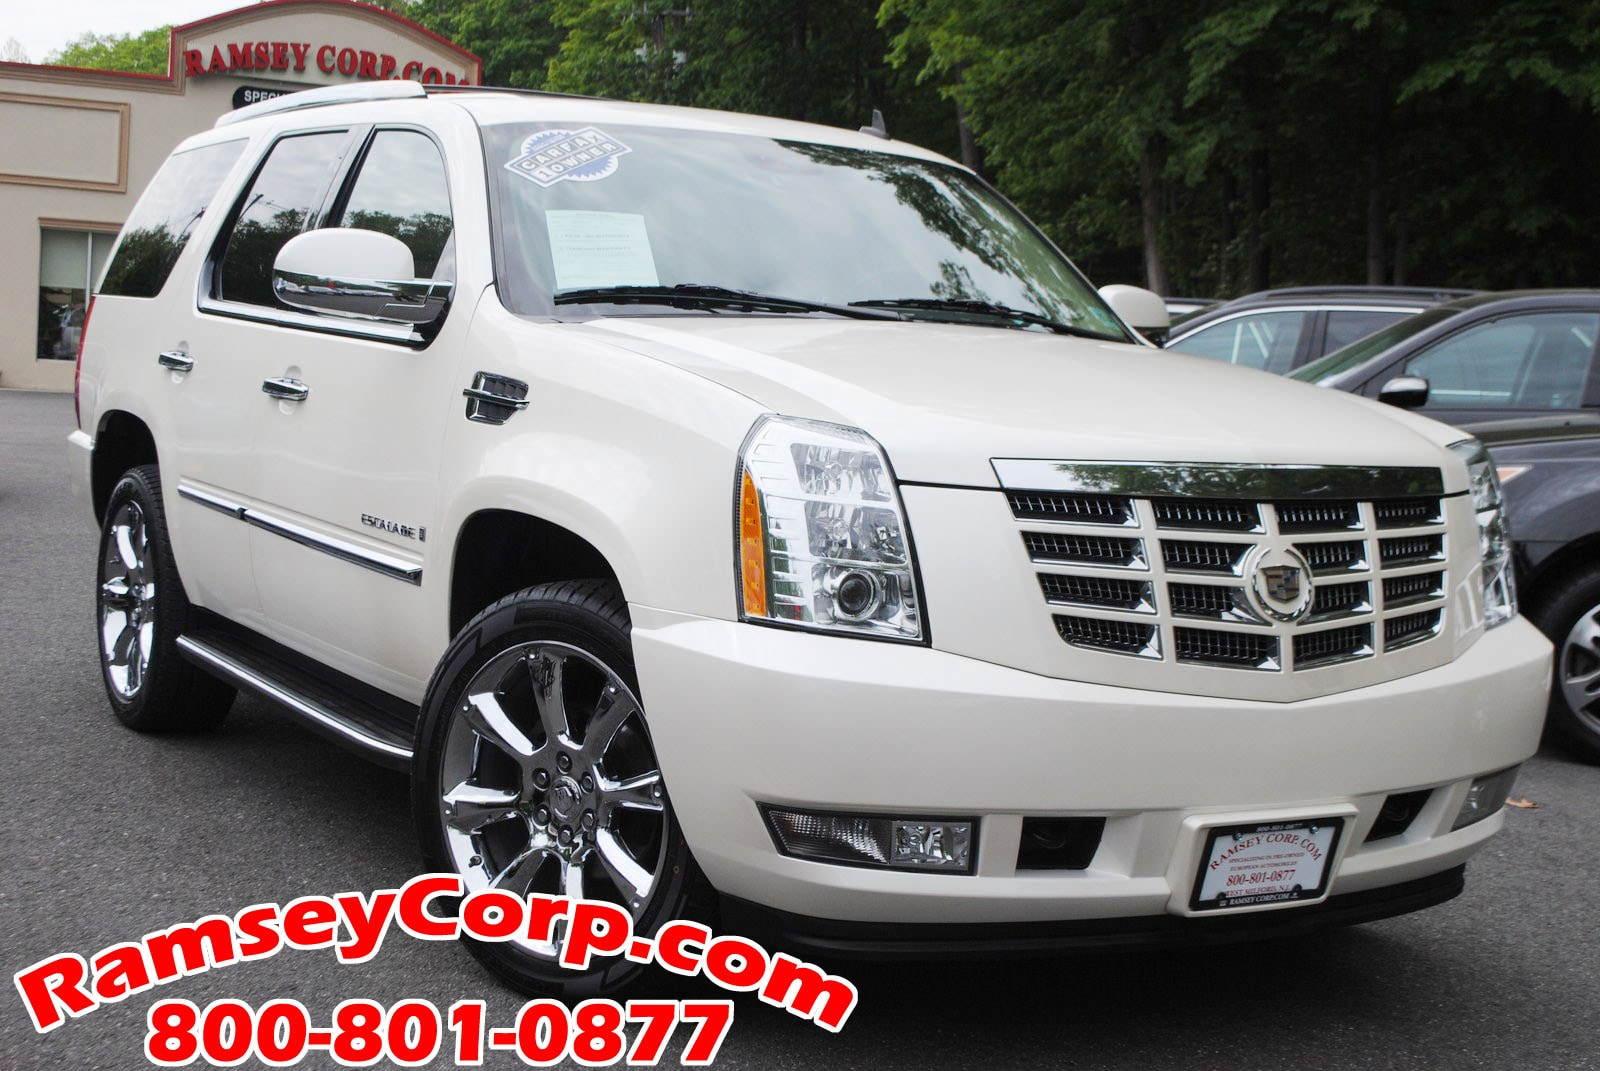 used 2009 cadillac escalade for sale west milford nj. Black Bedroom Furniture Sets. Home Design Ideas